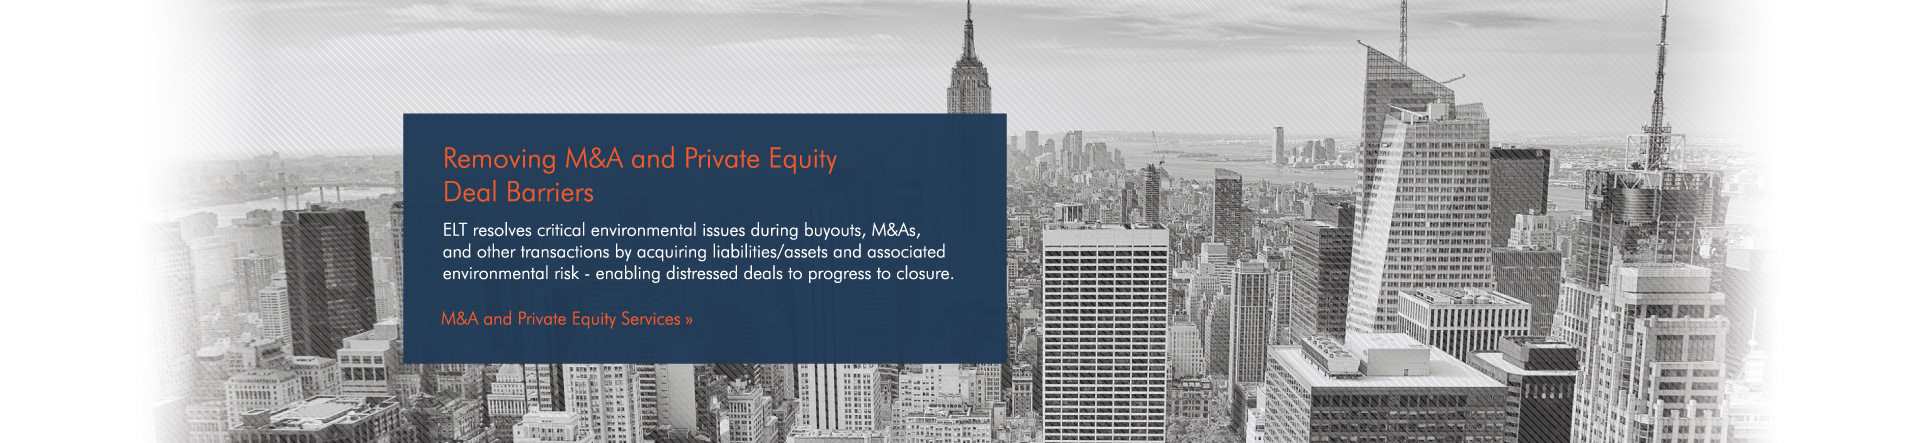 M&A-and-Private-Equity-Services